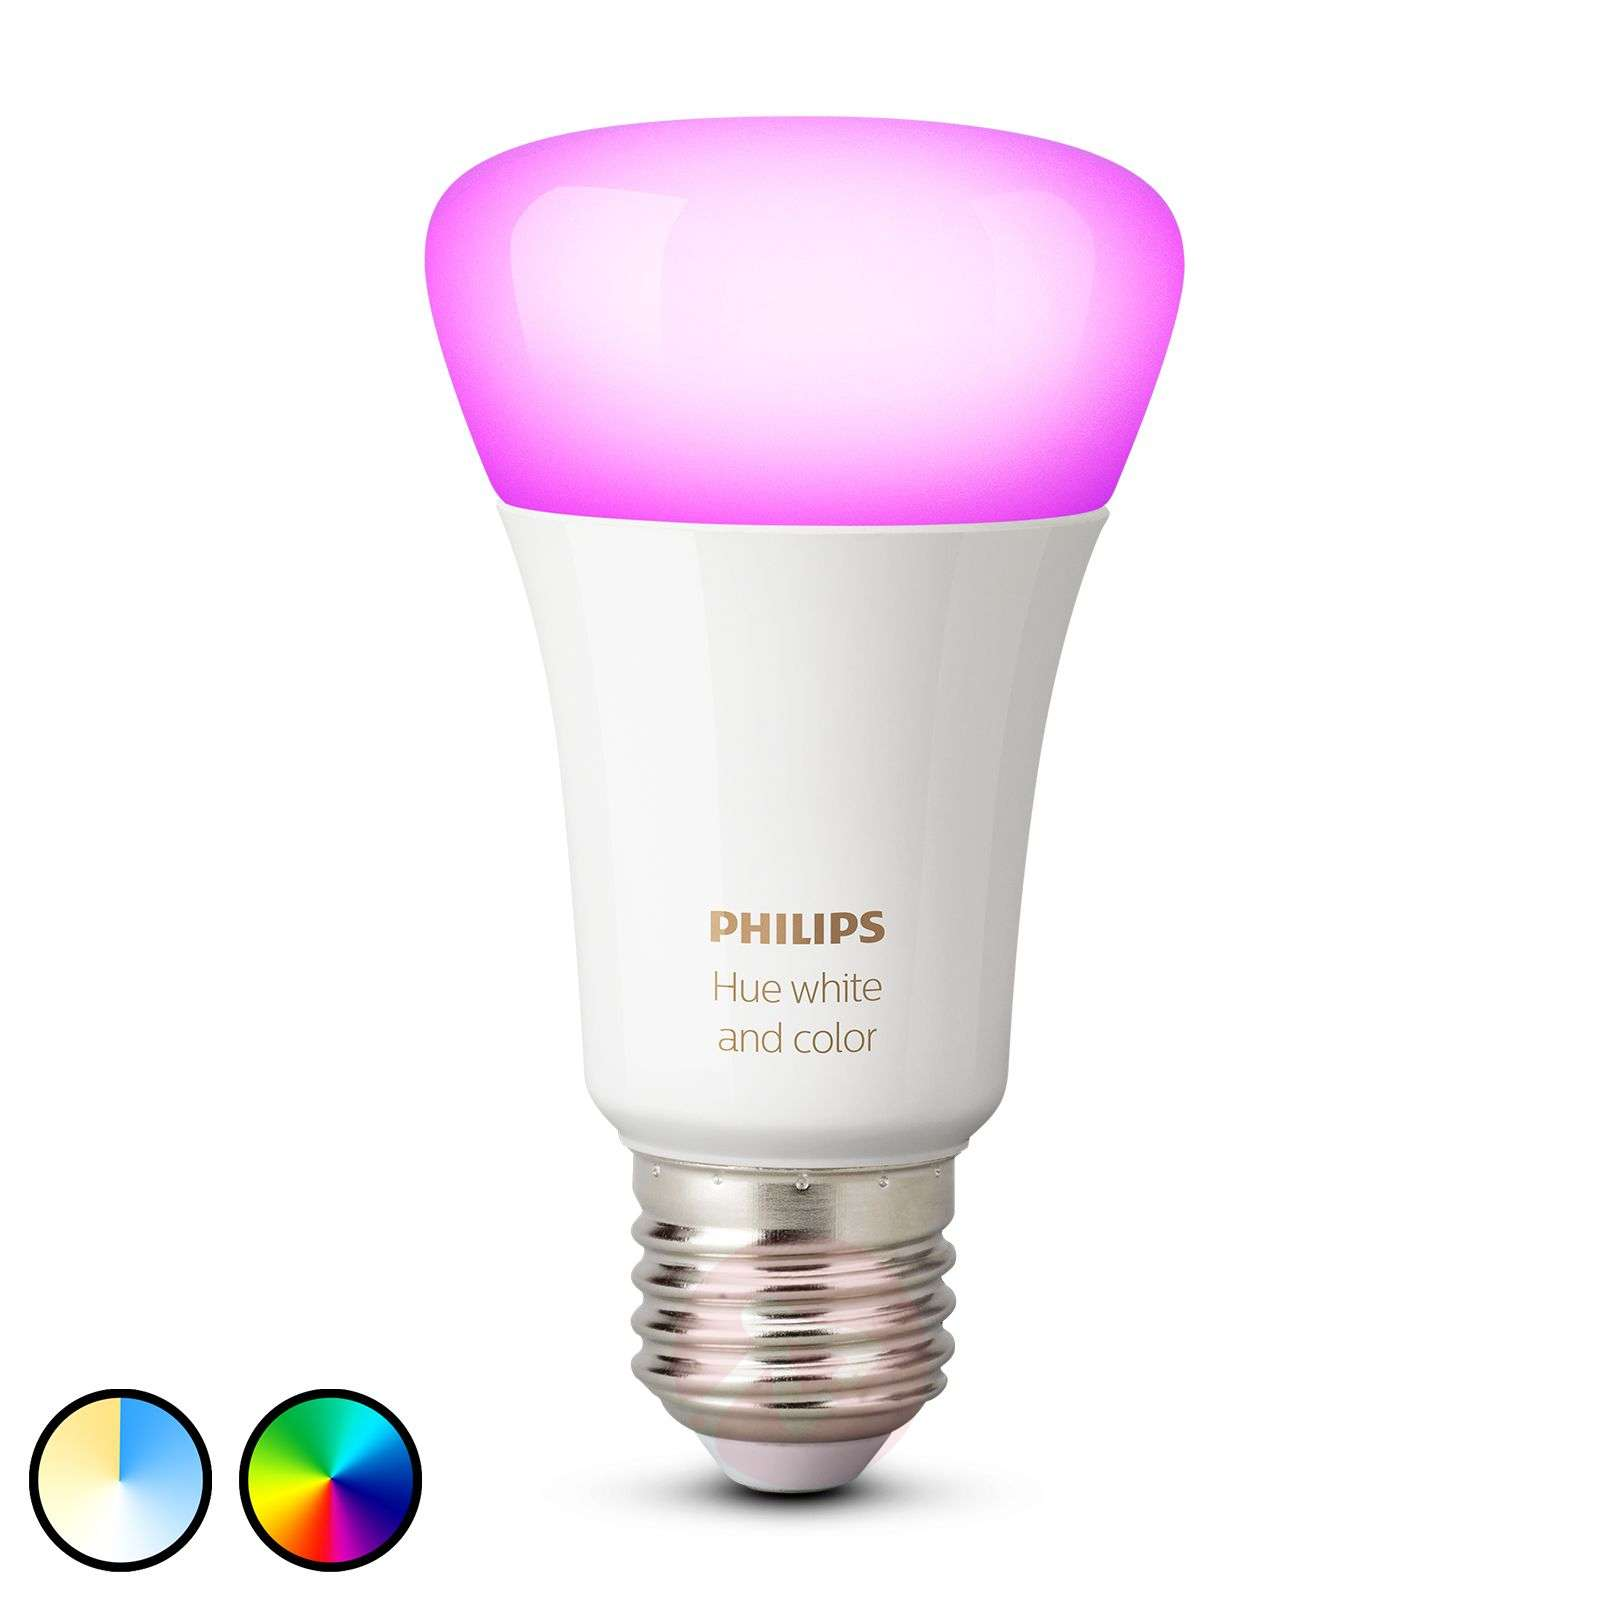 Philips Hue White and Color Ambiance 9 W E27 LED-7534134-01